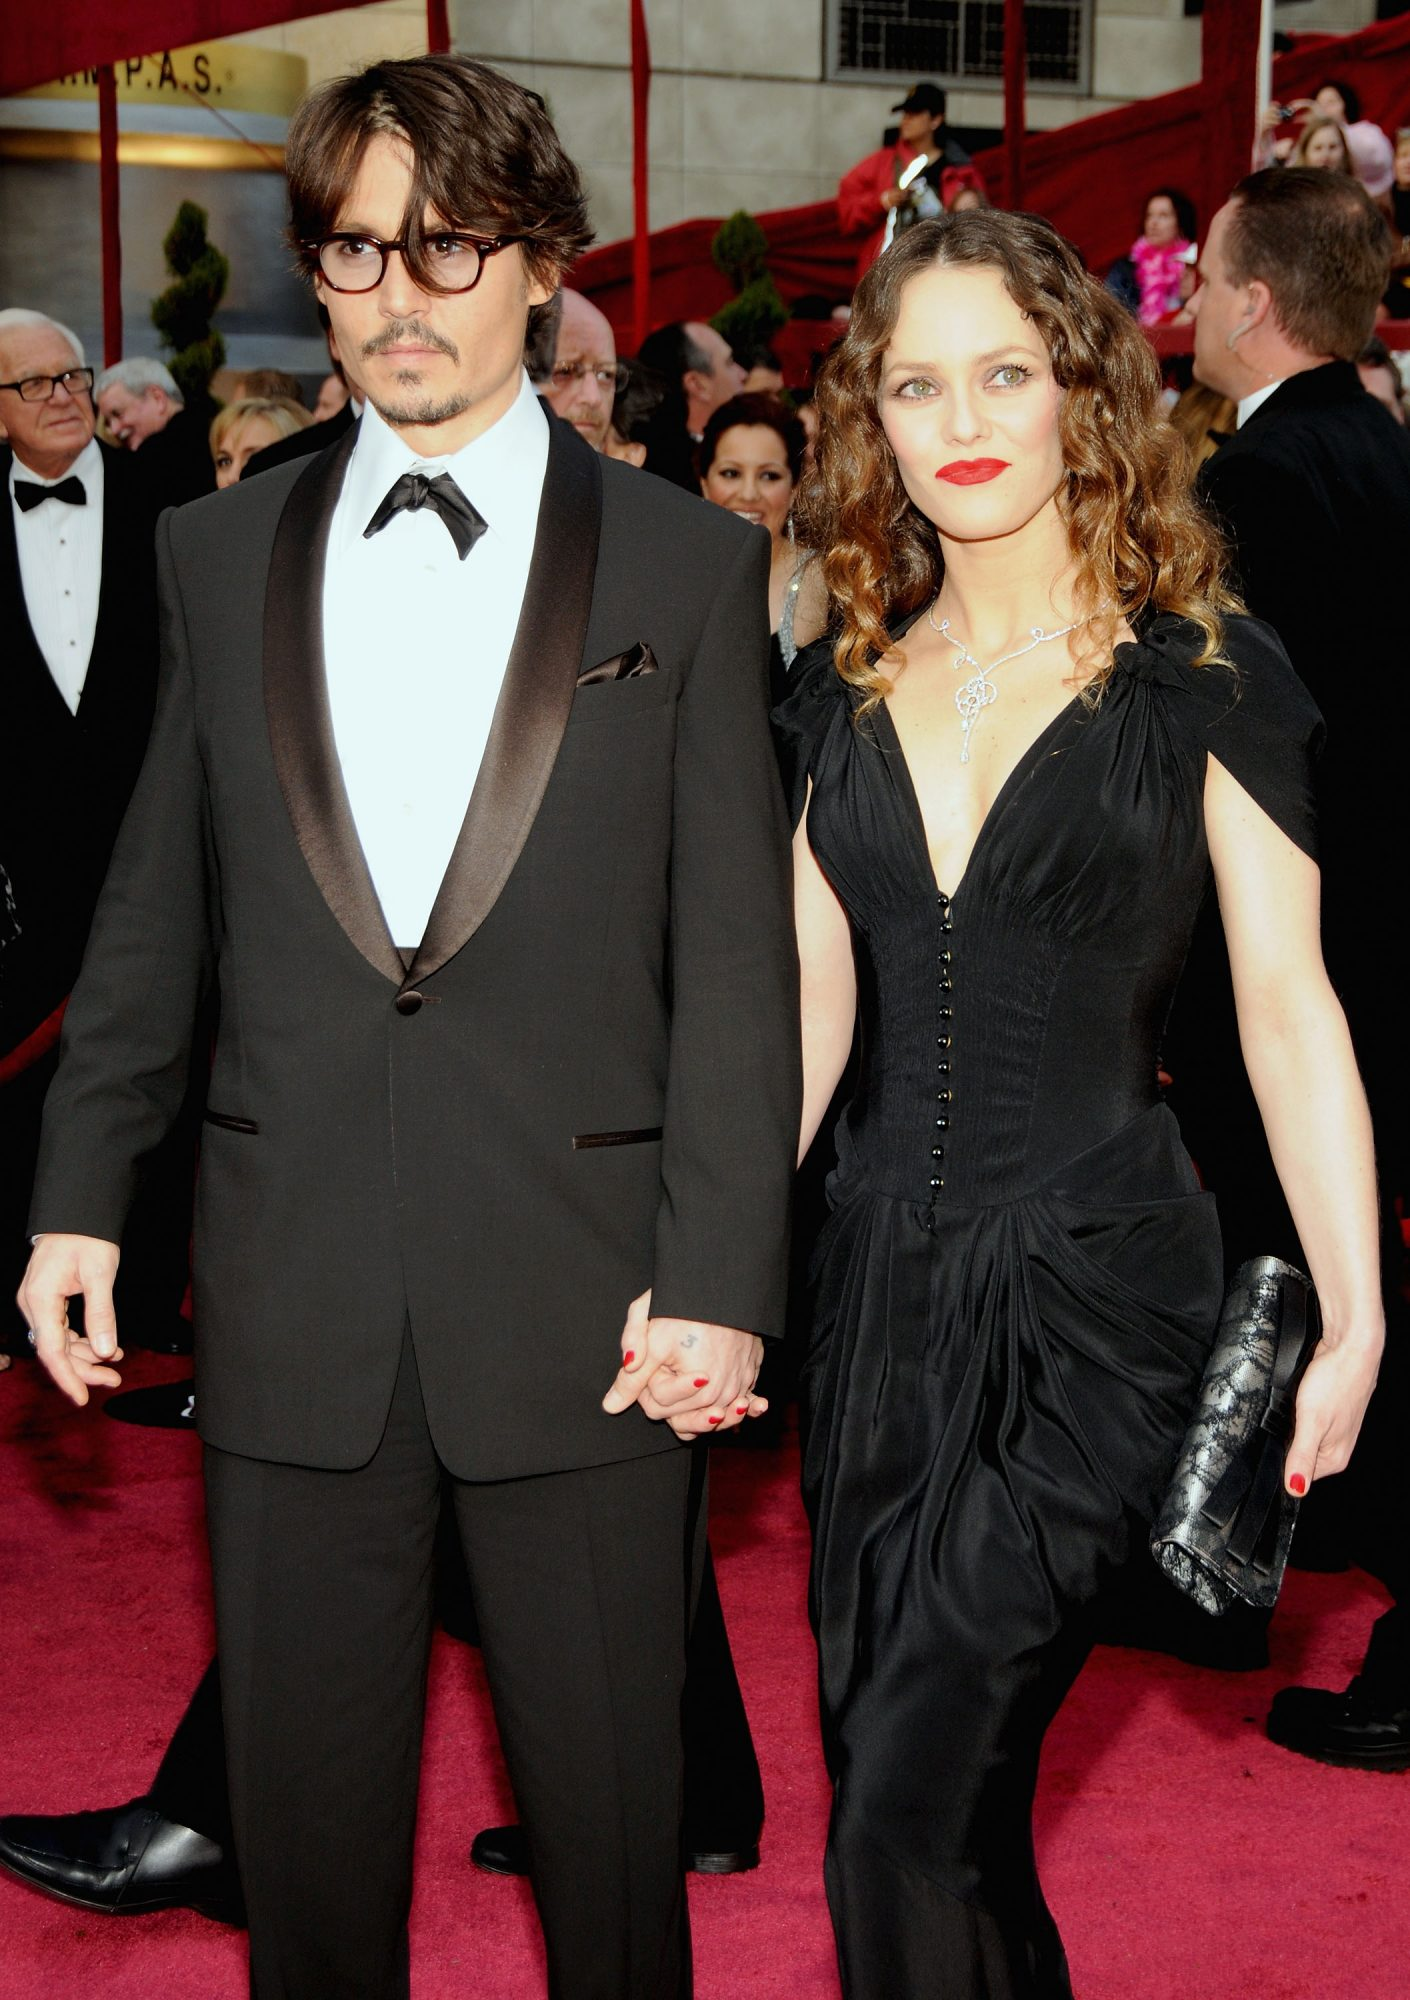 Johnny Depp and Vanessa Paradis' 16-Year-Old Son Jack Has 'Serious Health Problems'